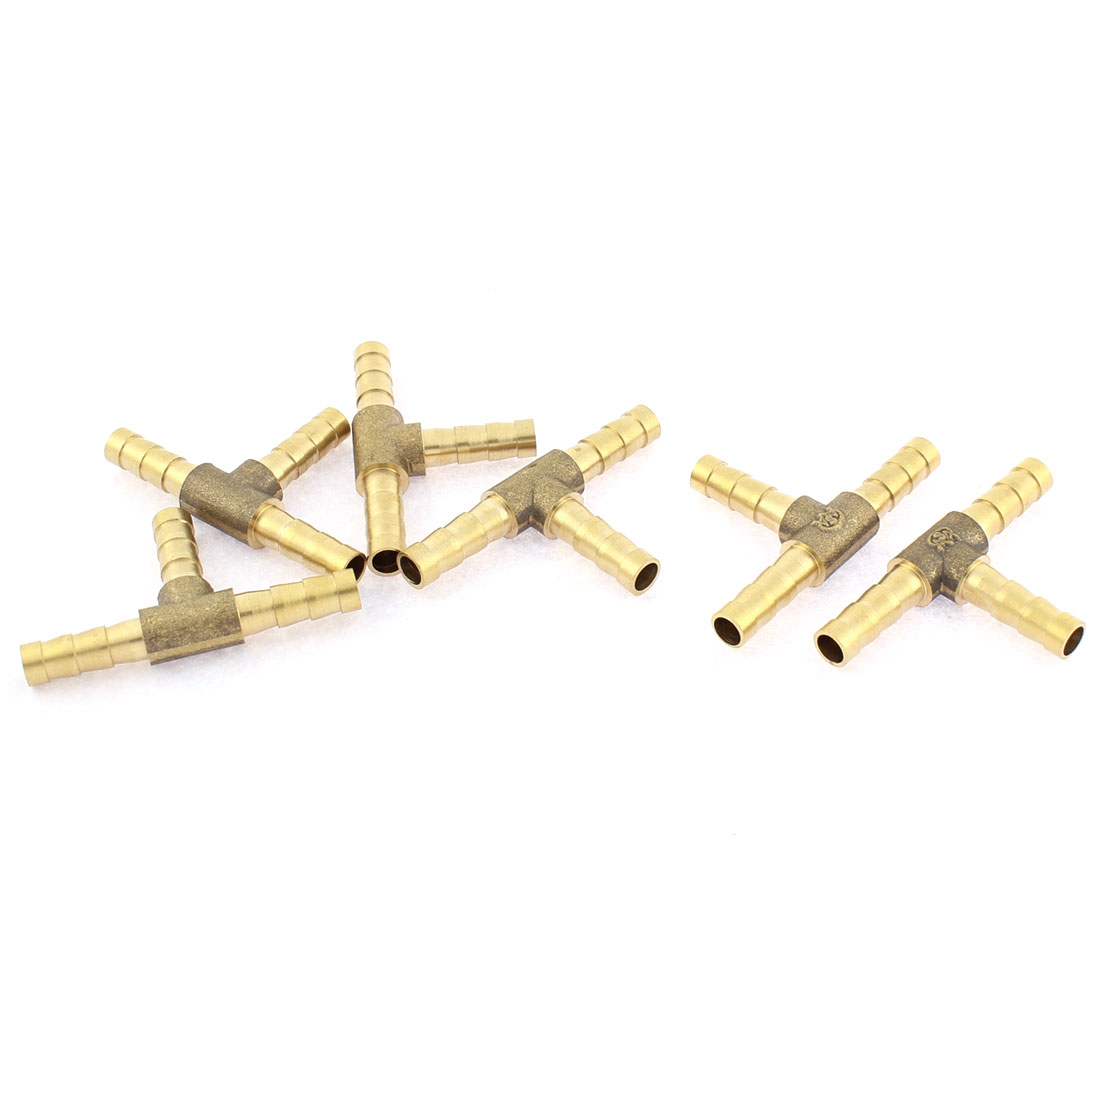 6Pcs T-Shape 3 Ways Brass Hose Barb Fitting Adapter Coupler for 6mm Pipe